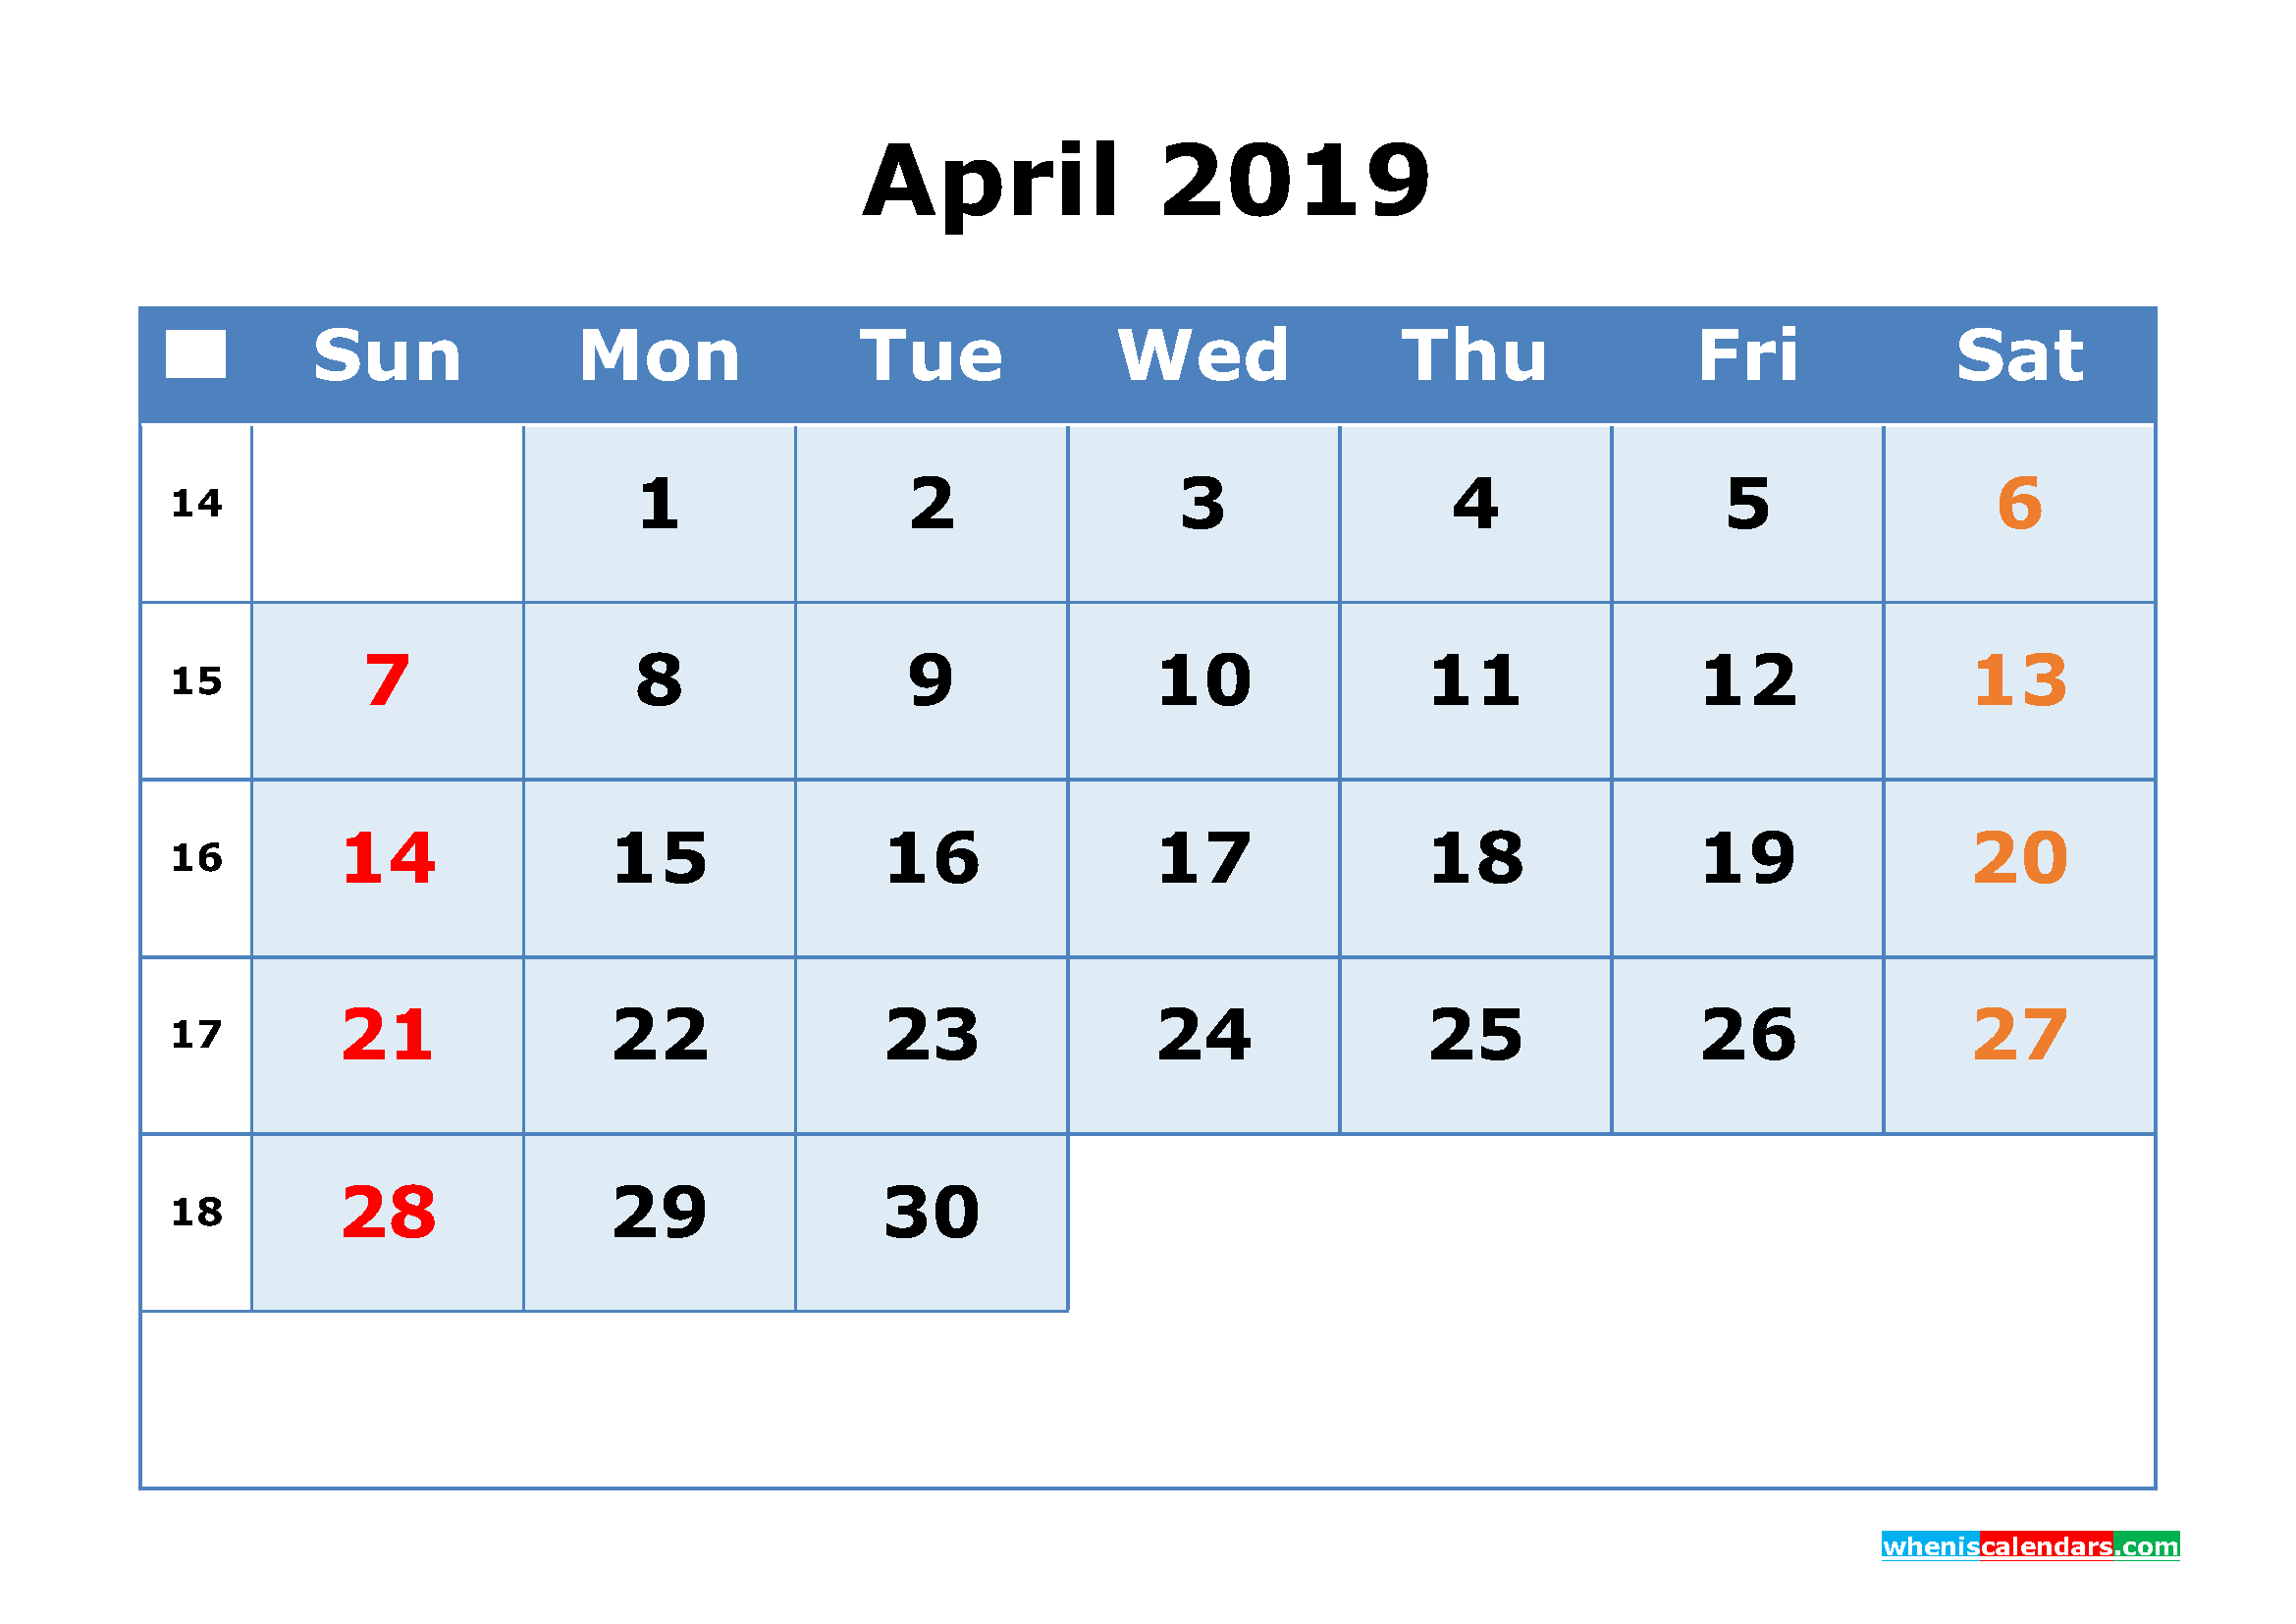 April 2019 Printable Calendar with Week Numbers as PDF, JPG